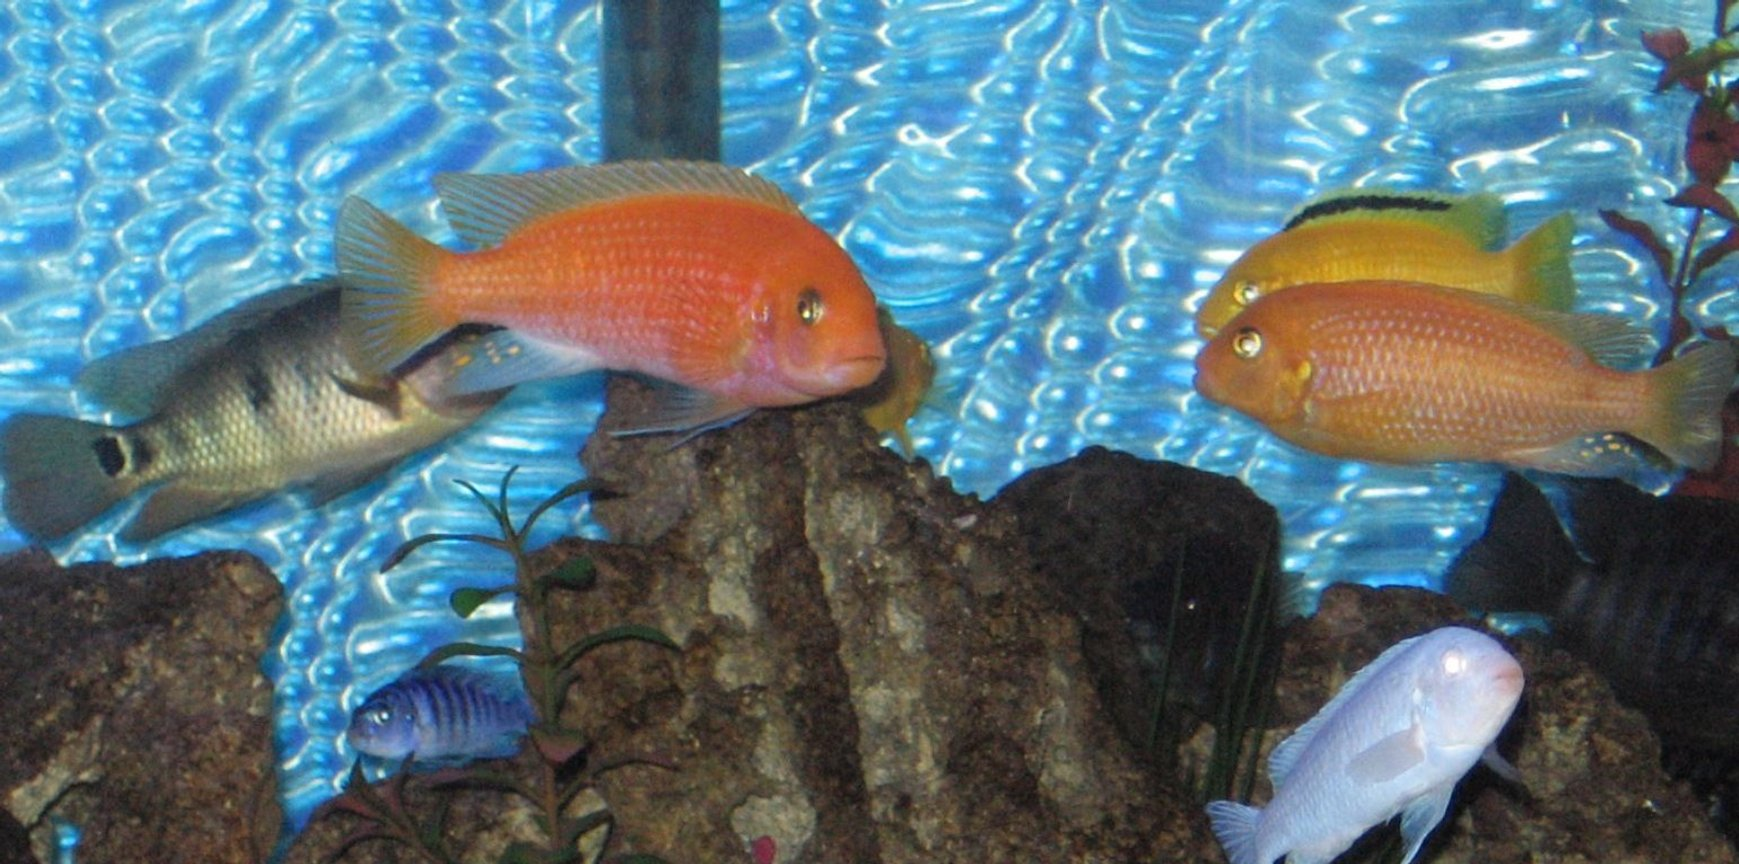 fish tank picture - more fish